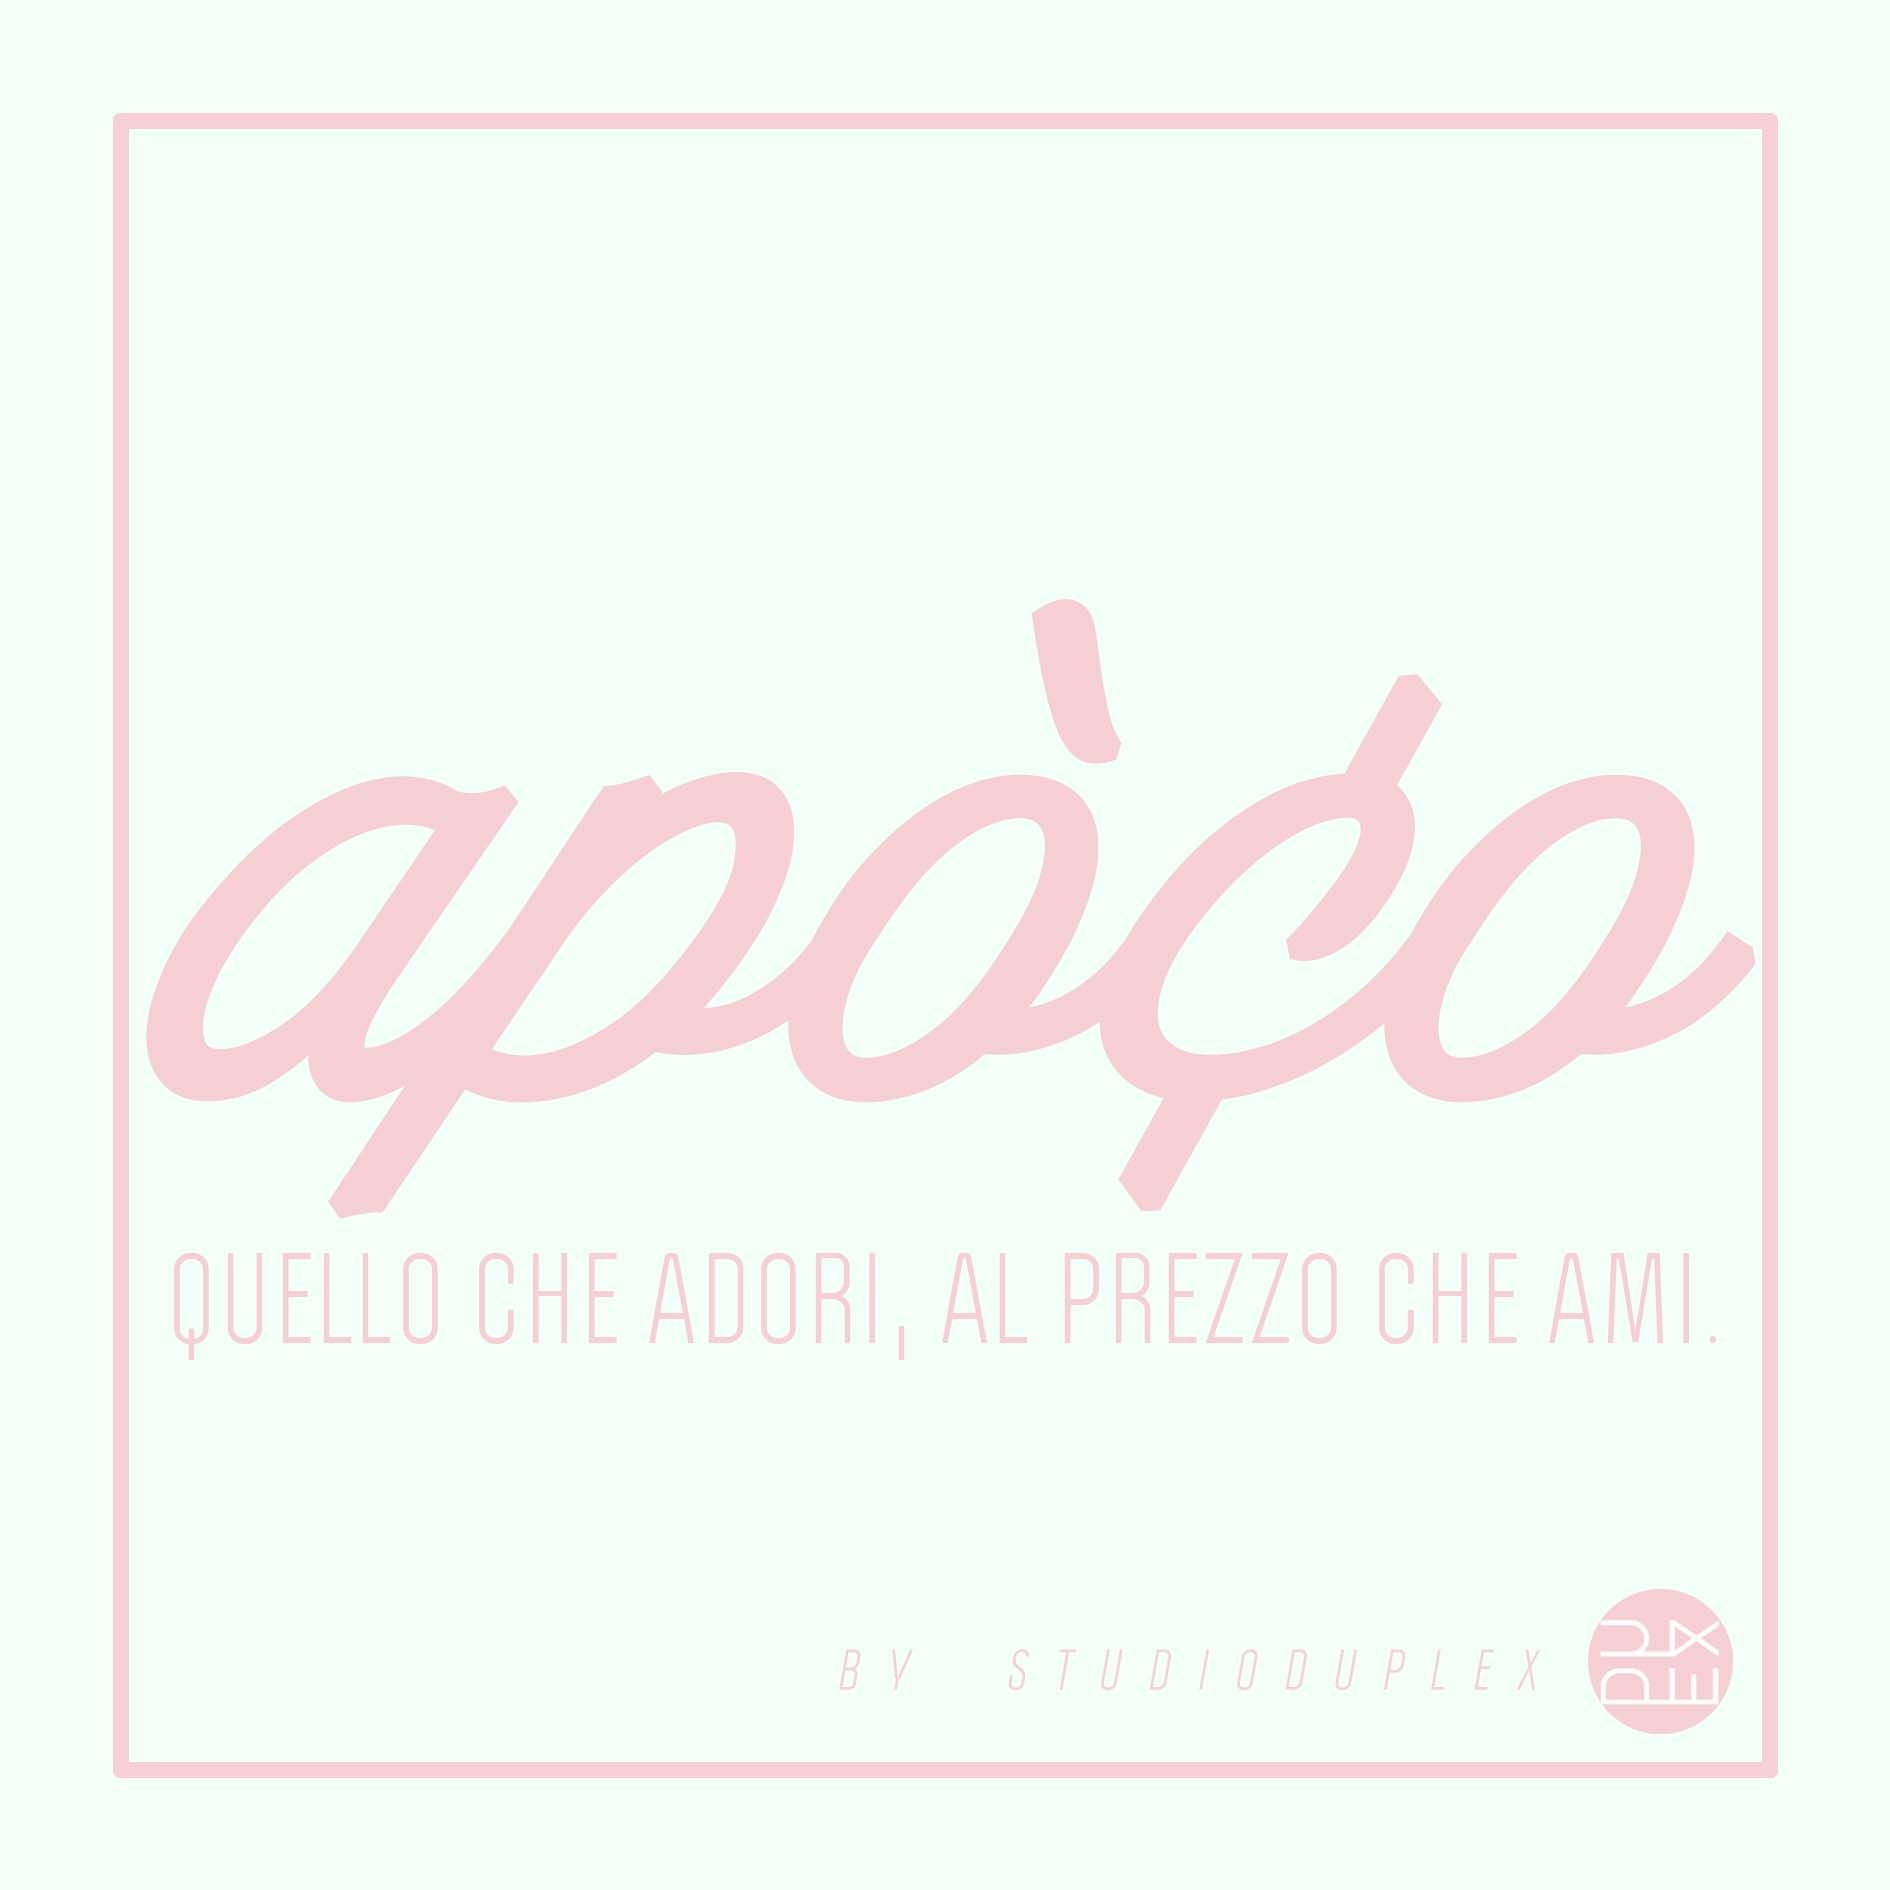 Apòco Logo in #IceMint and #Pink